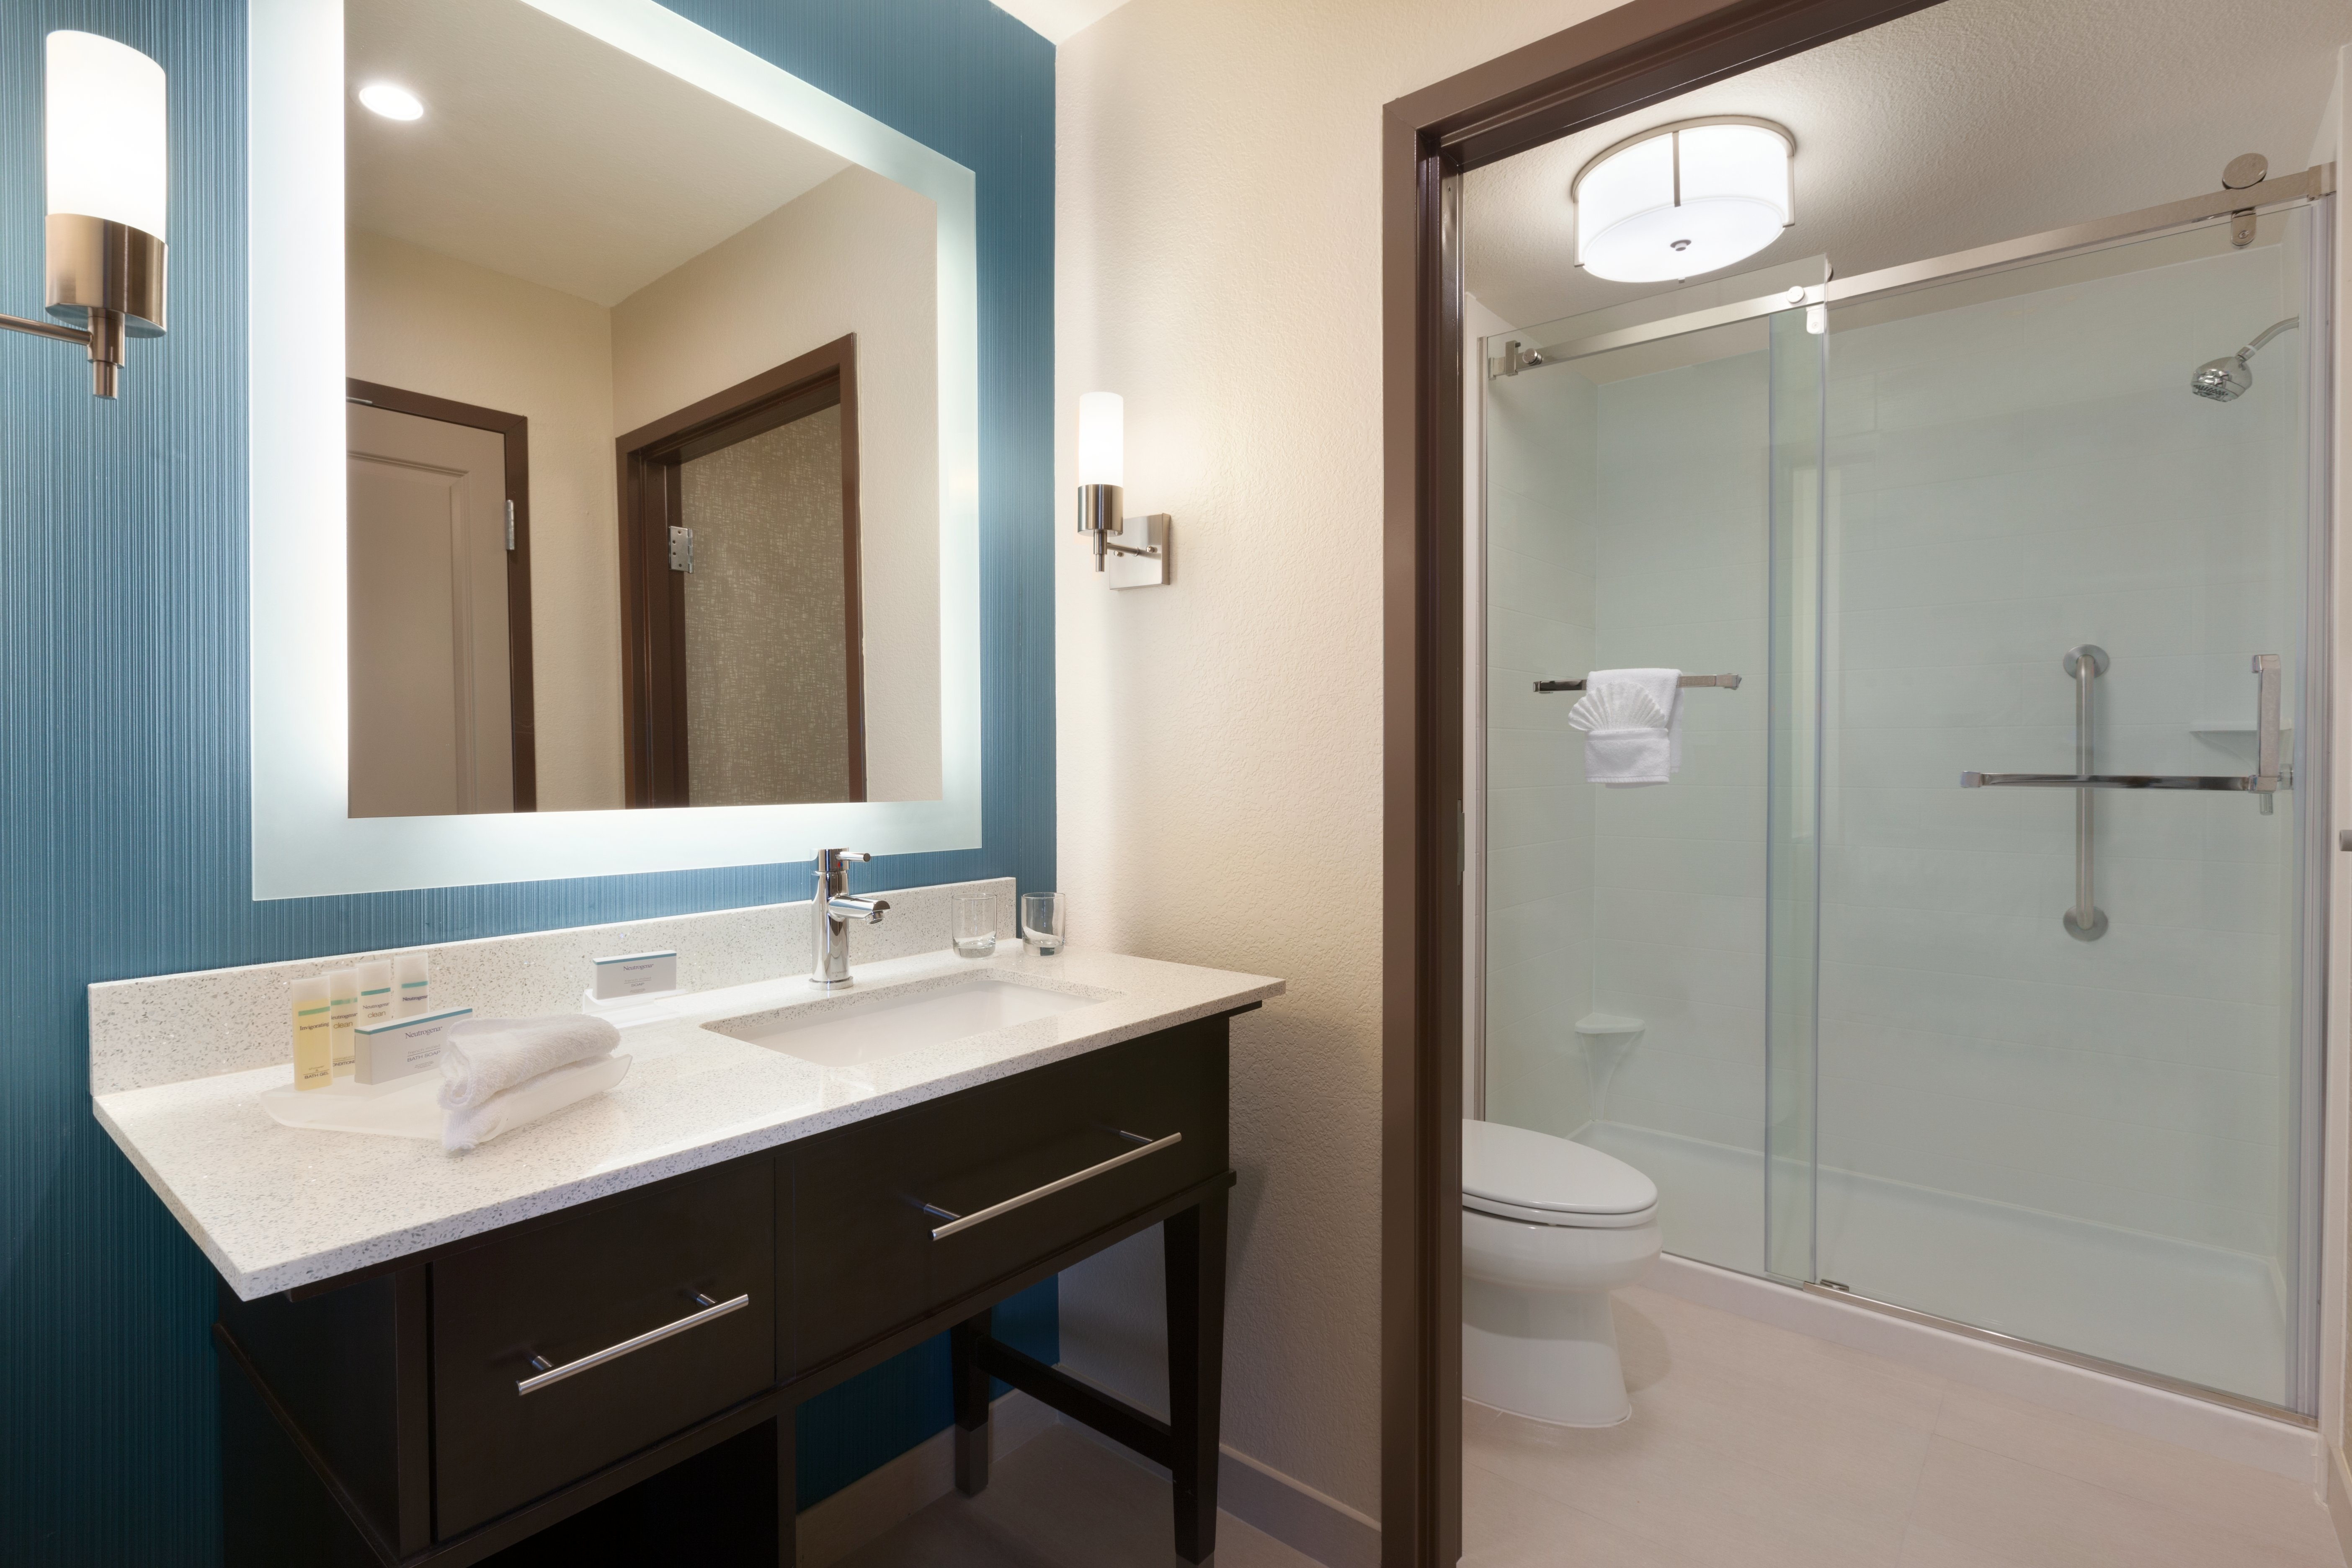 Homewood Suites by Hilton North Houston/Spring image 6